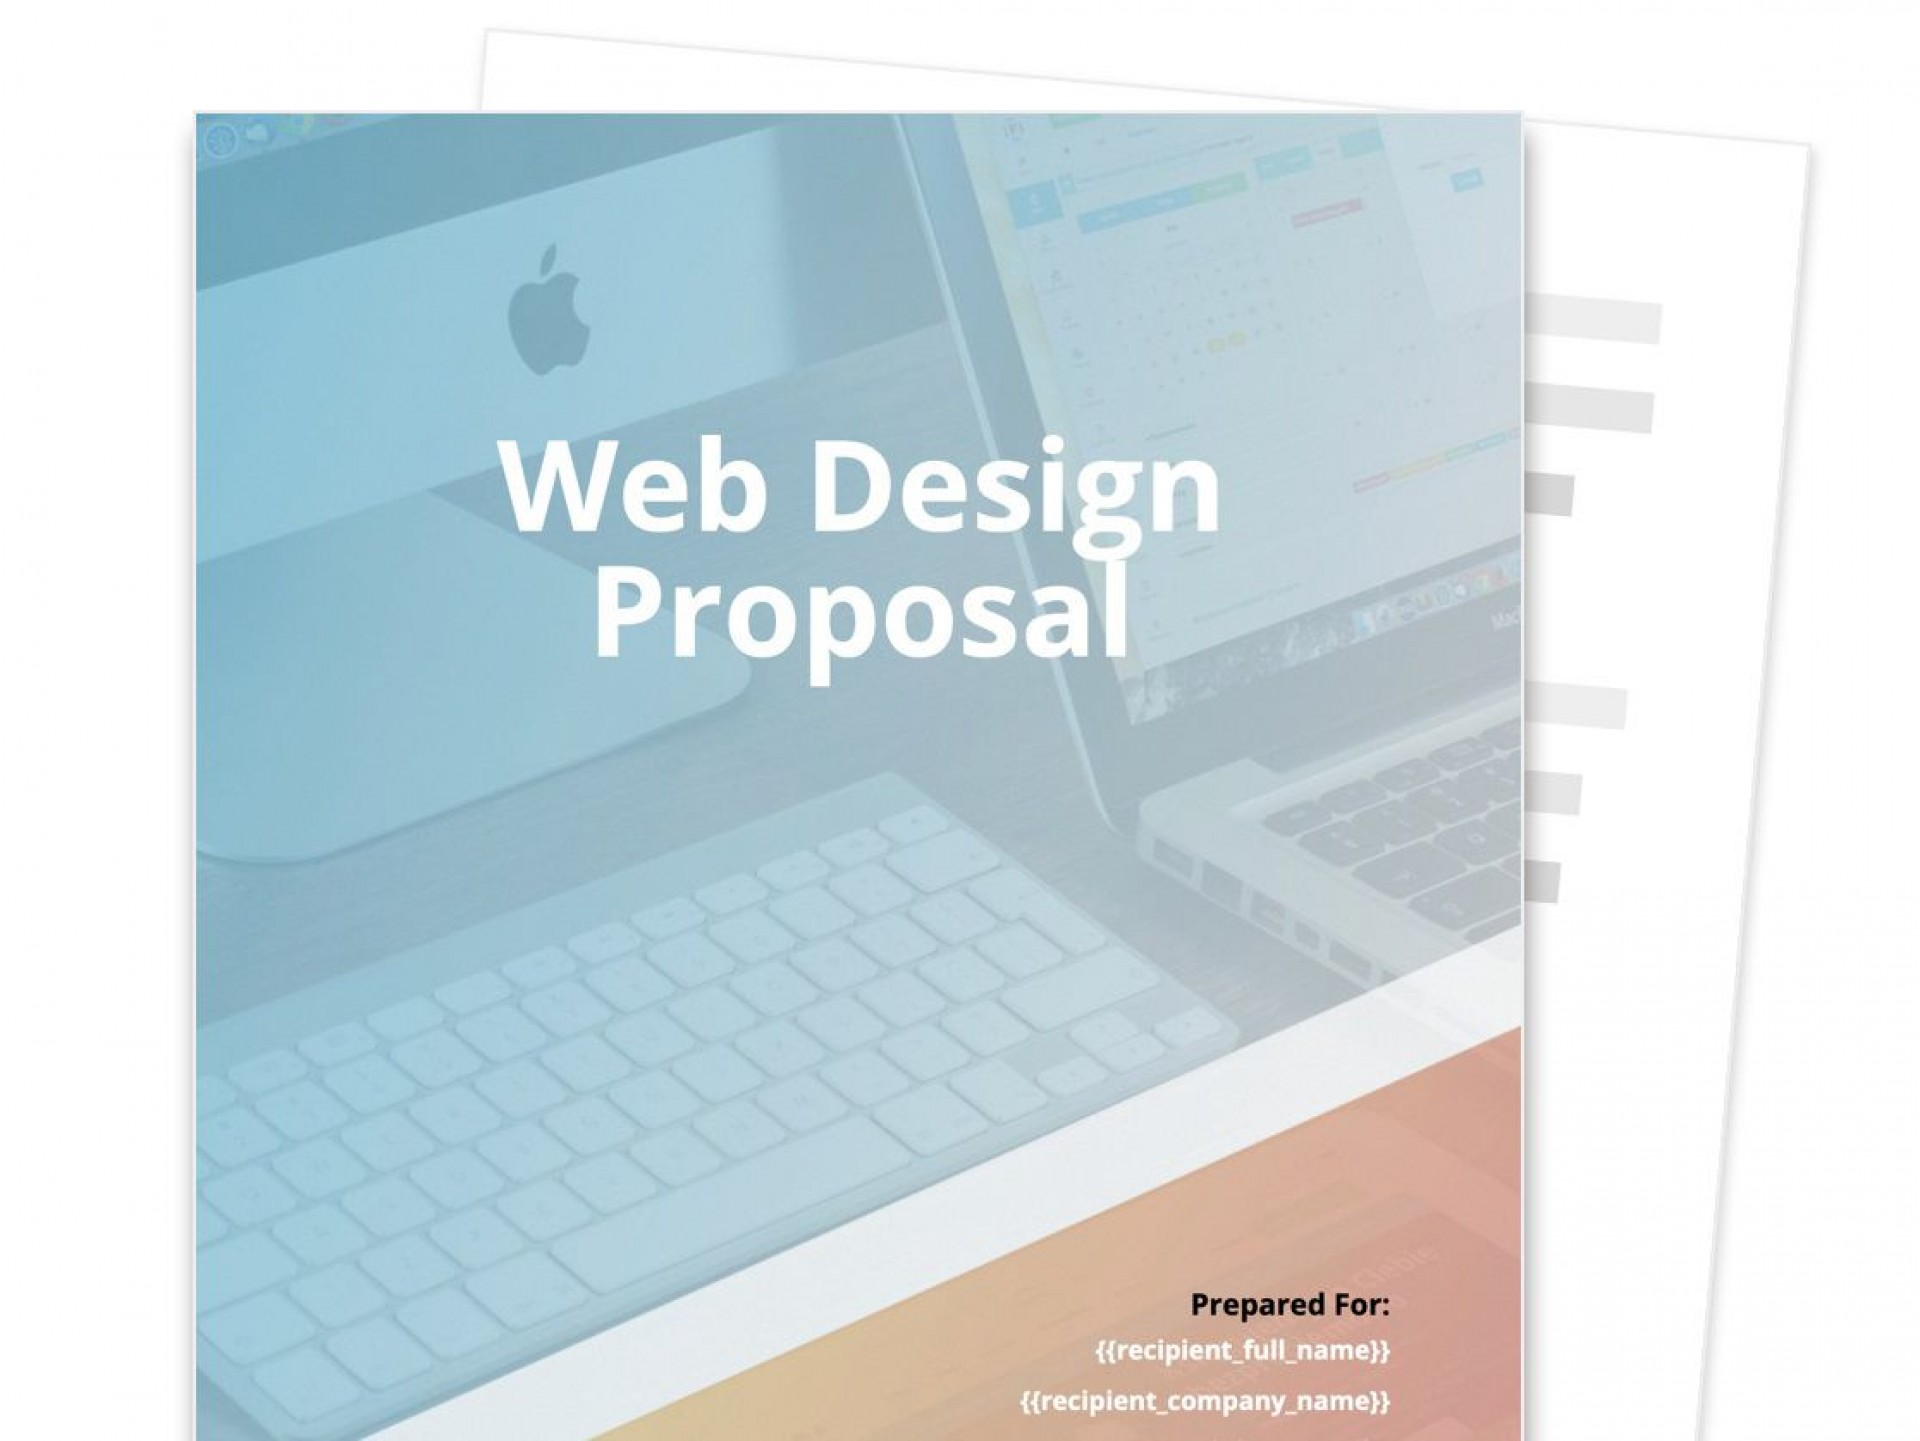 009 Phenomenal Web Design Proposal Template High Def  Designer Writing Word Document Simple1920